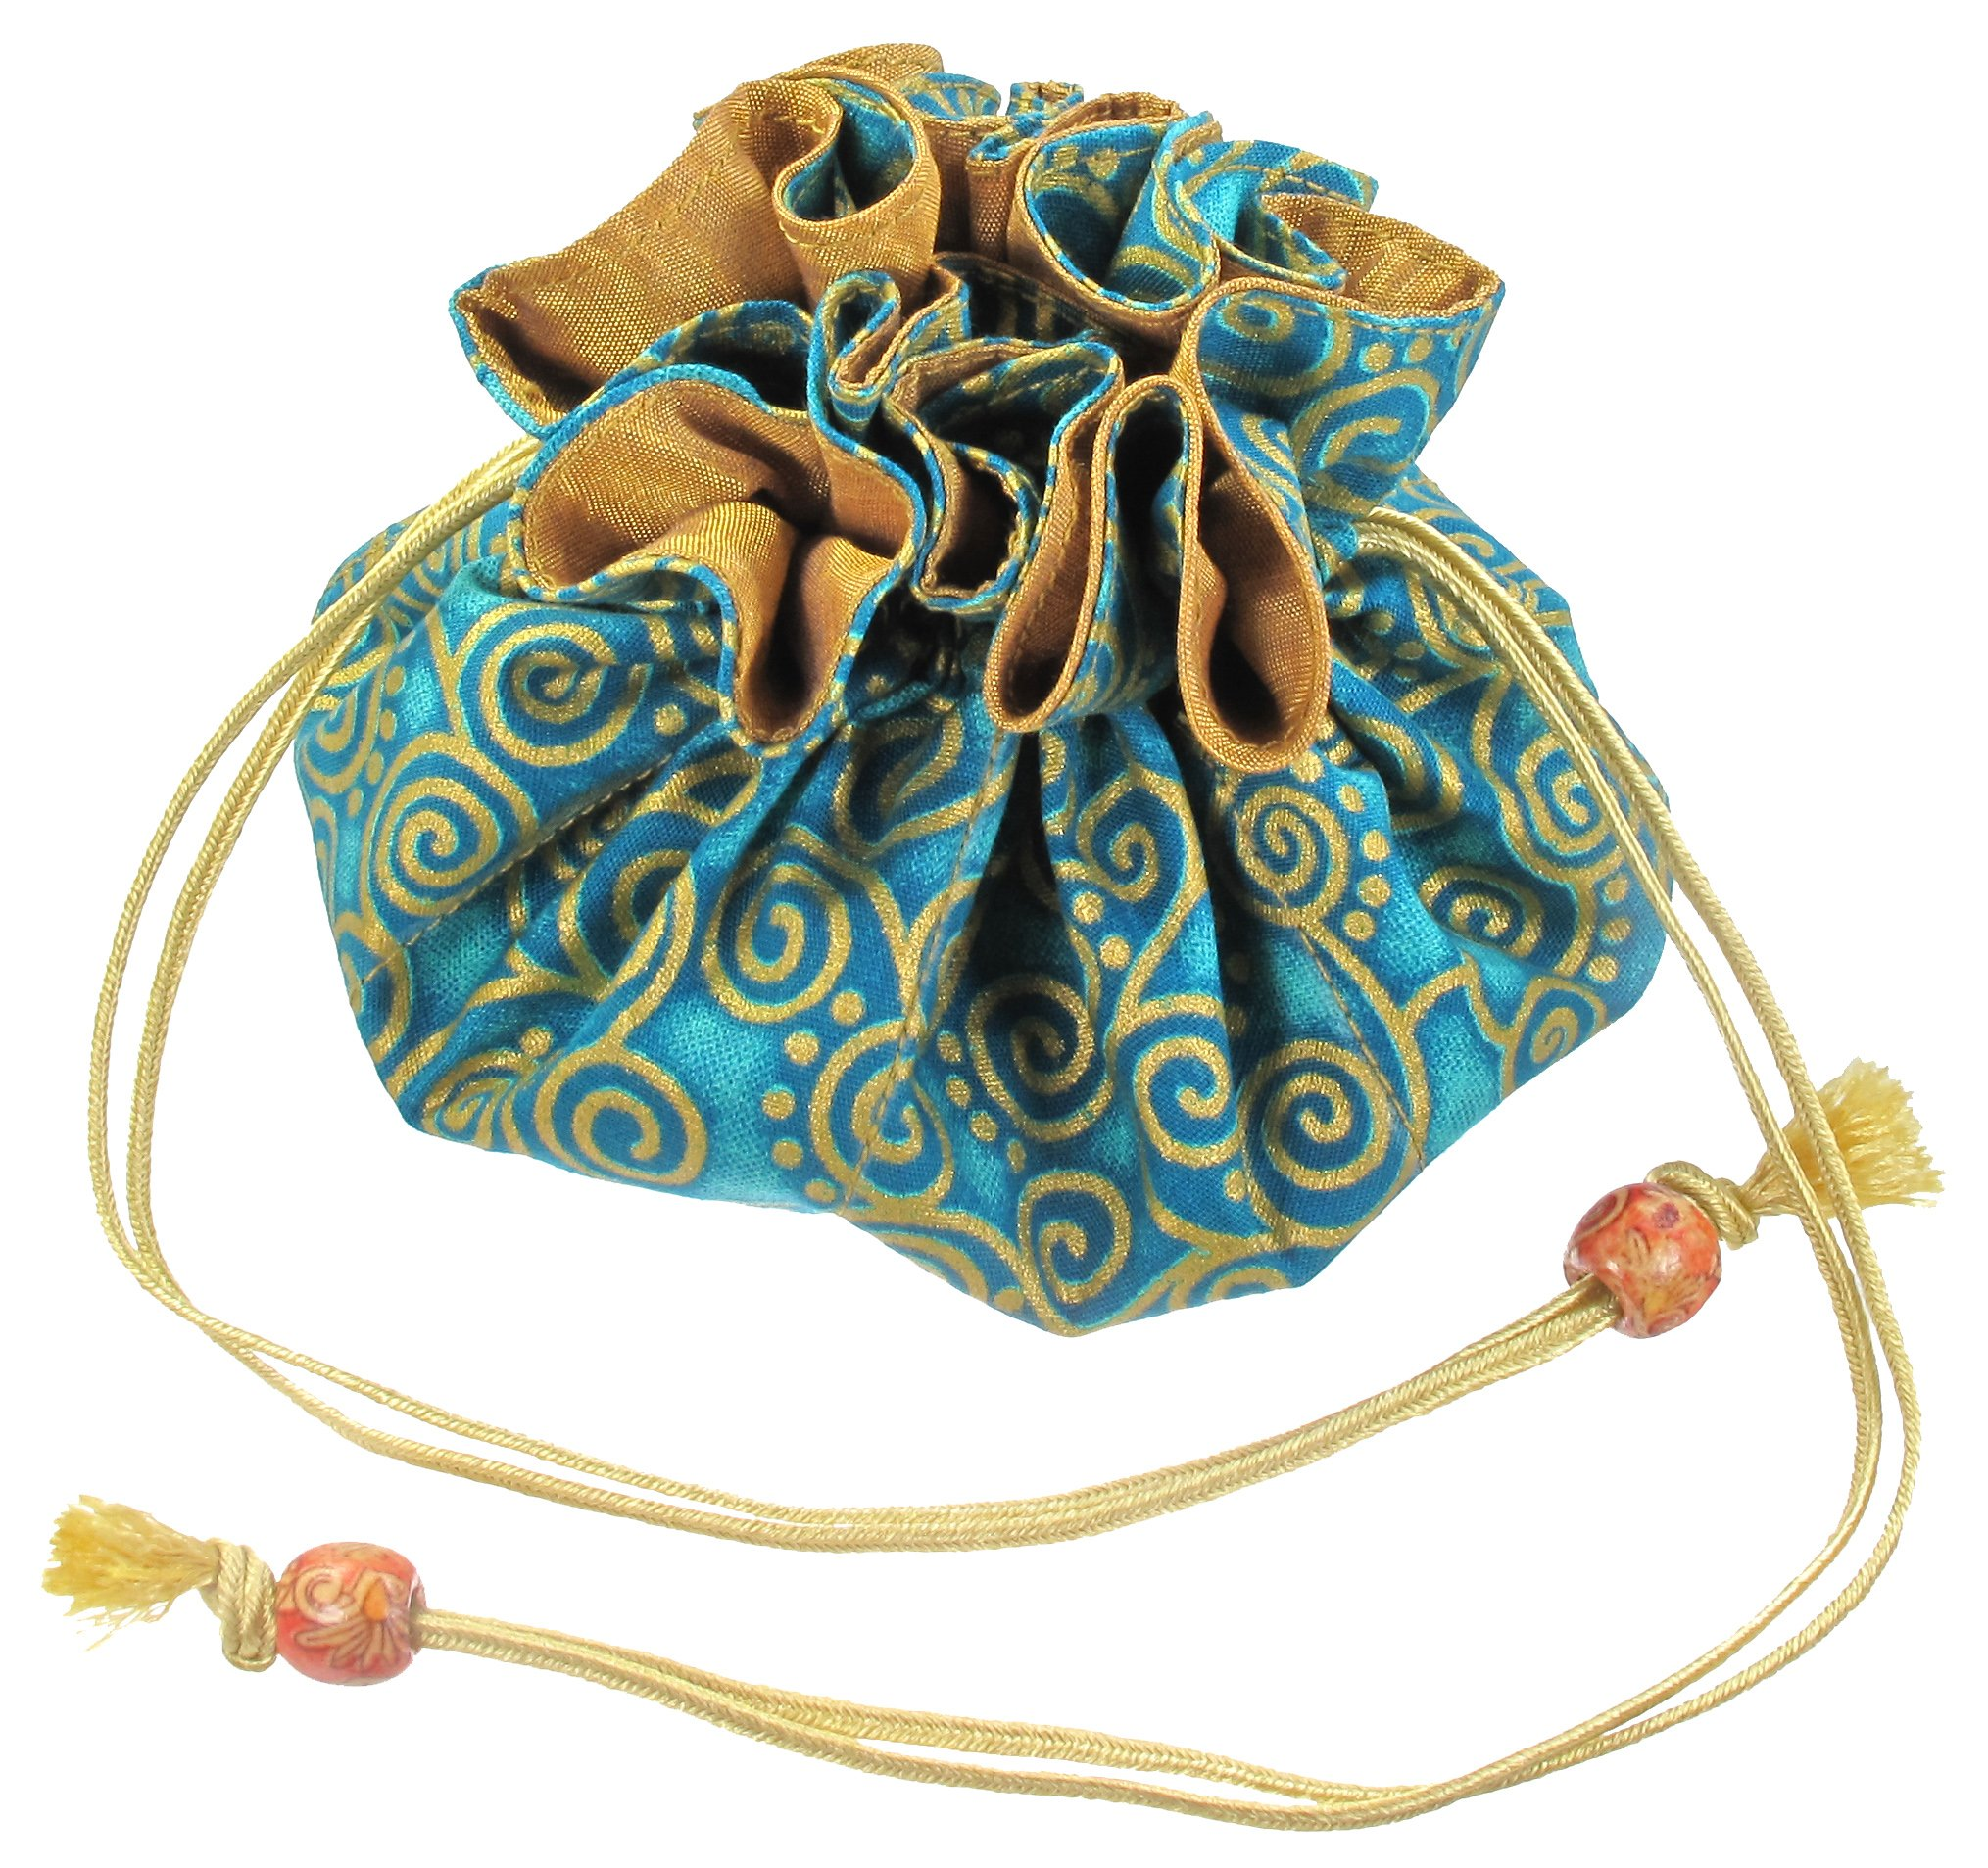 Silk & Cotton Drawstring Jewelry Pouch, Aquamarine Blue with Gold Swirls by TropicaZona